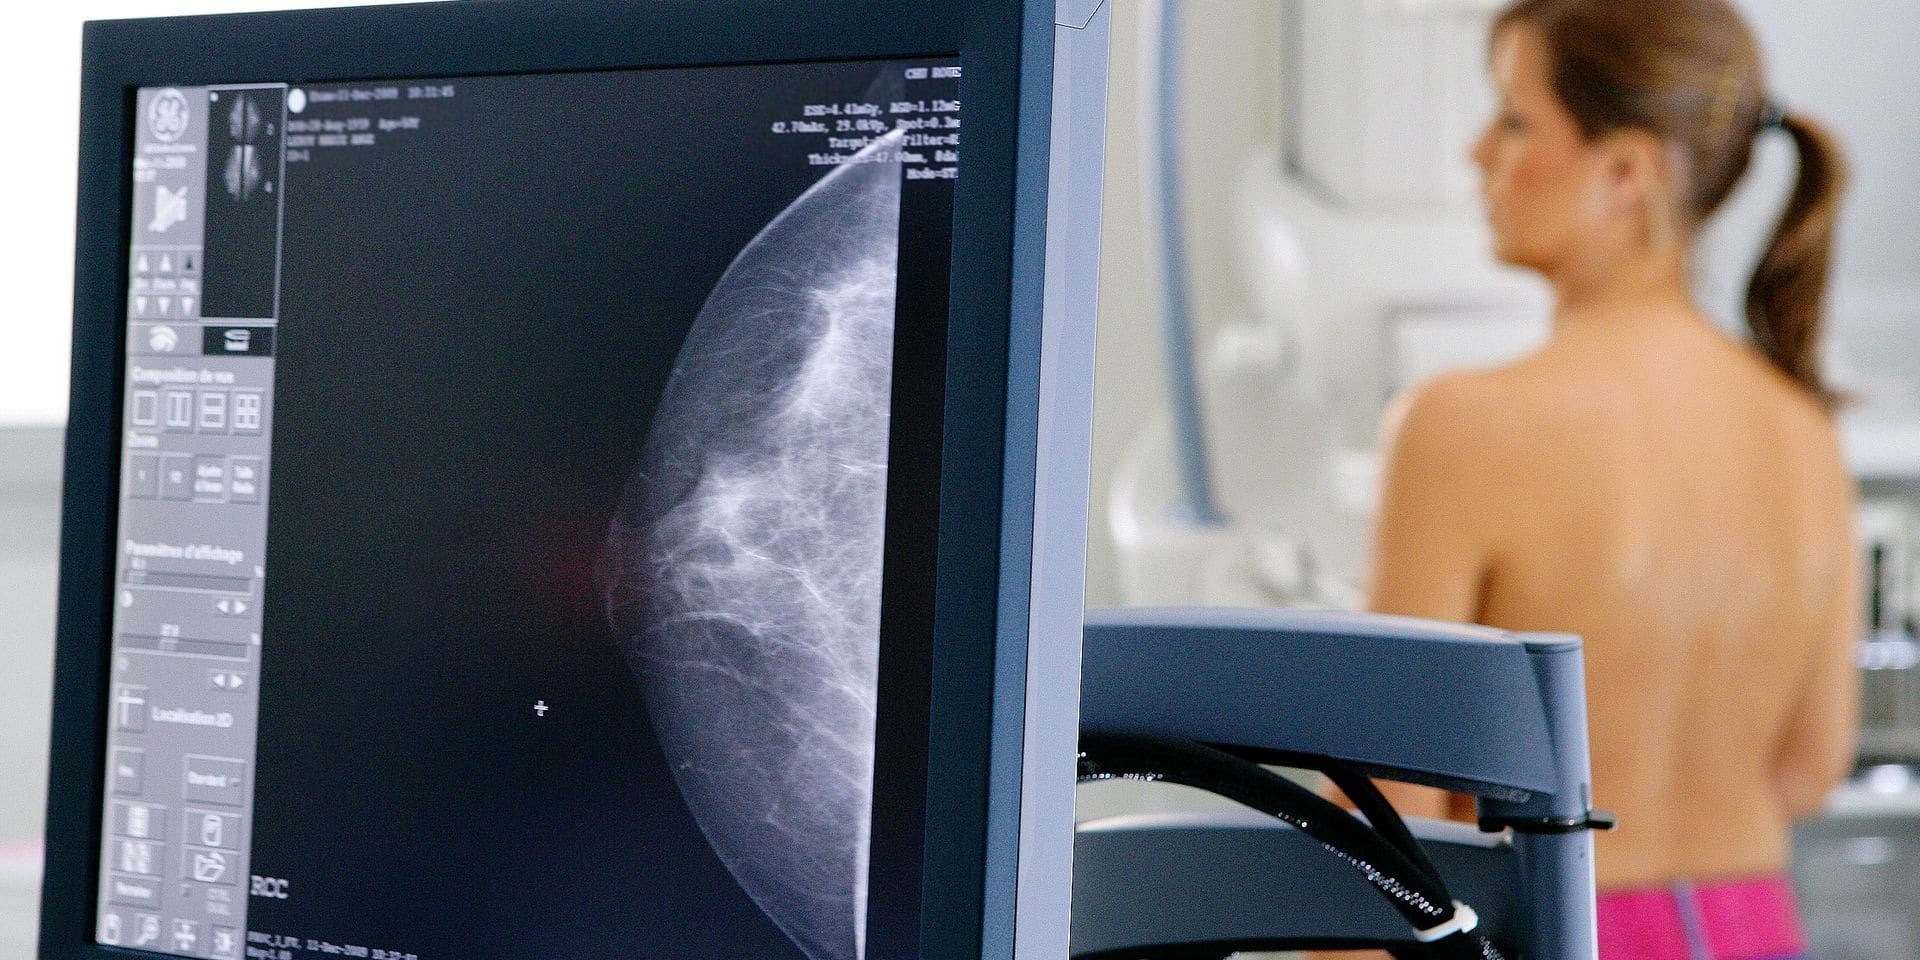 Mammography at Rouen university hospital, France.